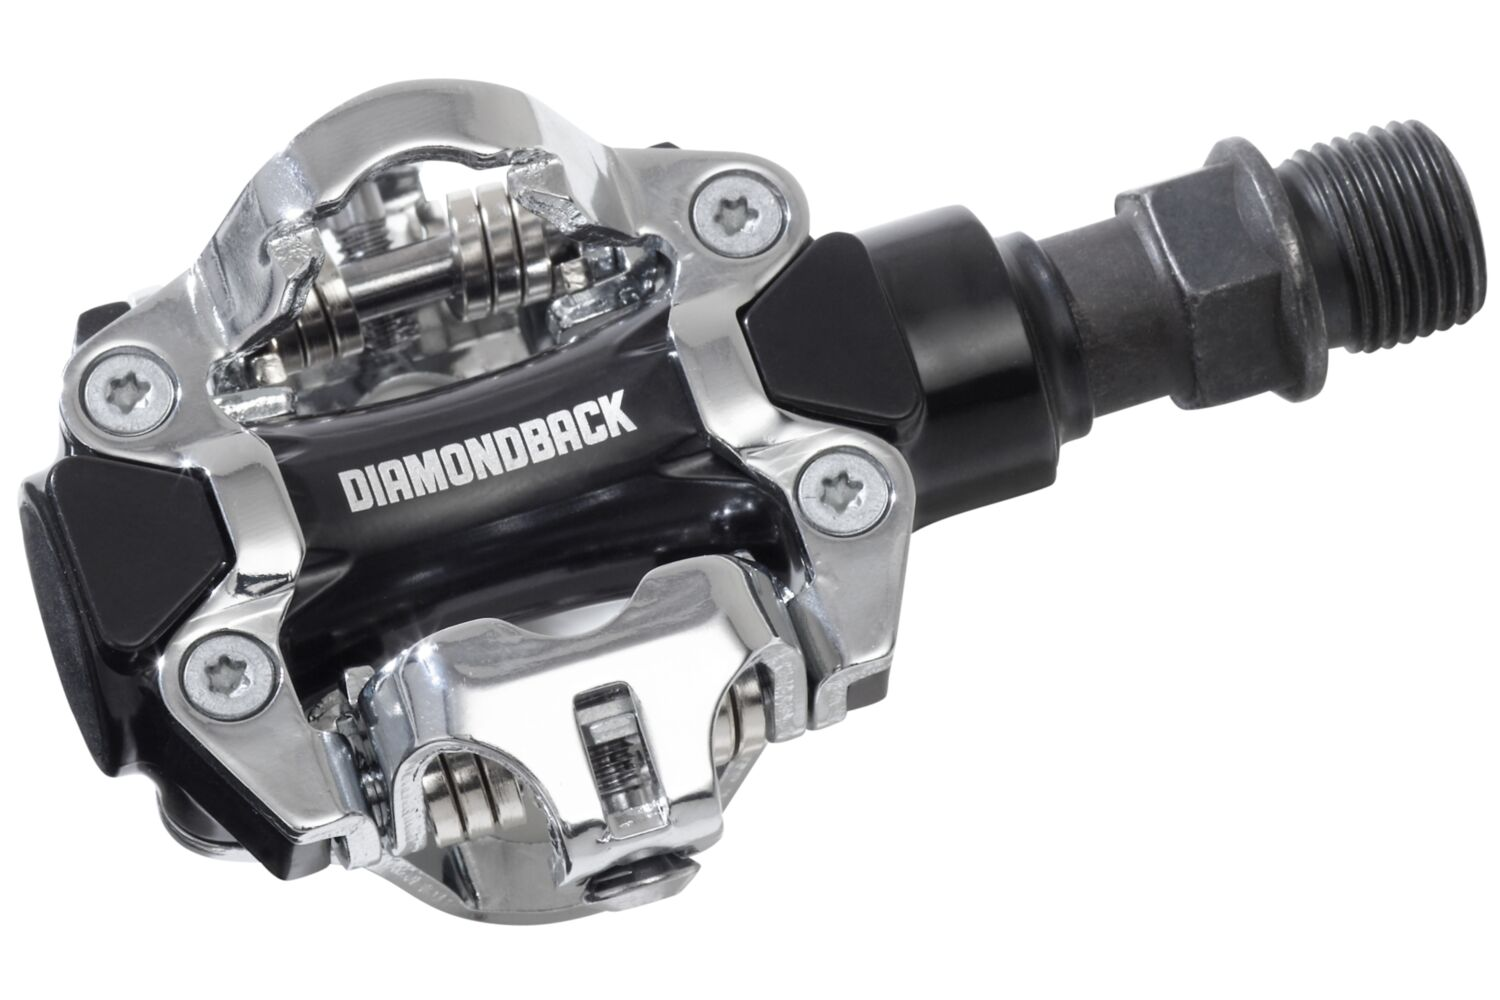 Axis Mountain Clipless Pedals